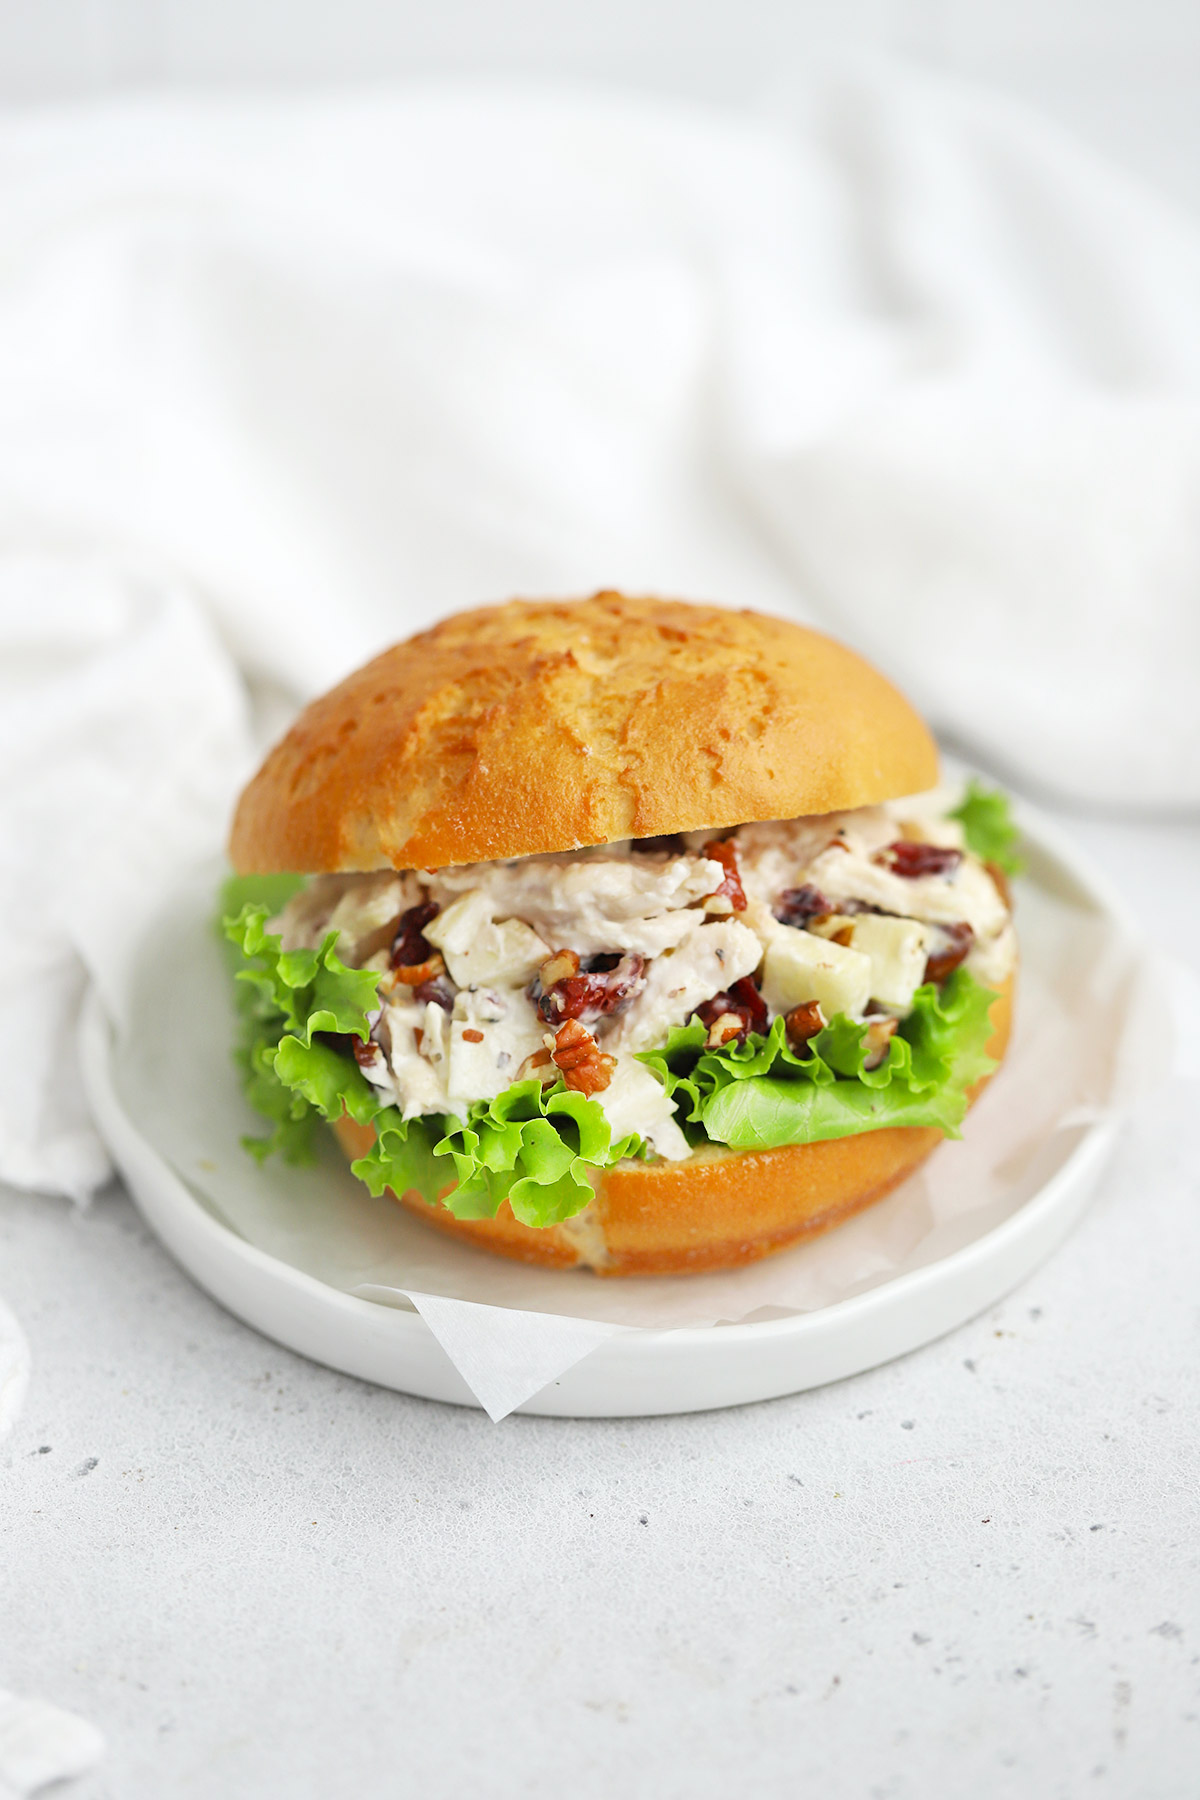 Front view of an apple cranberry chicken salad sandwich made with a gluten-free bun on a white plate.